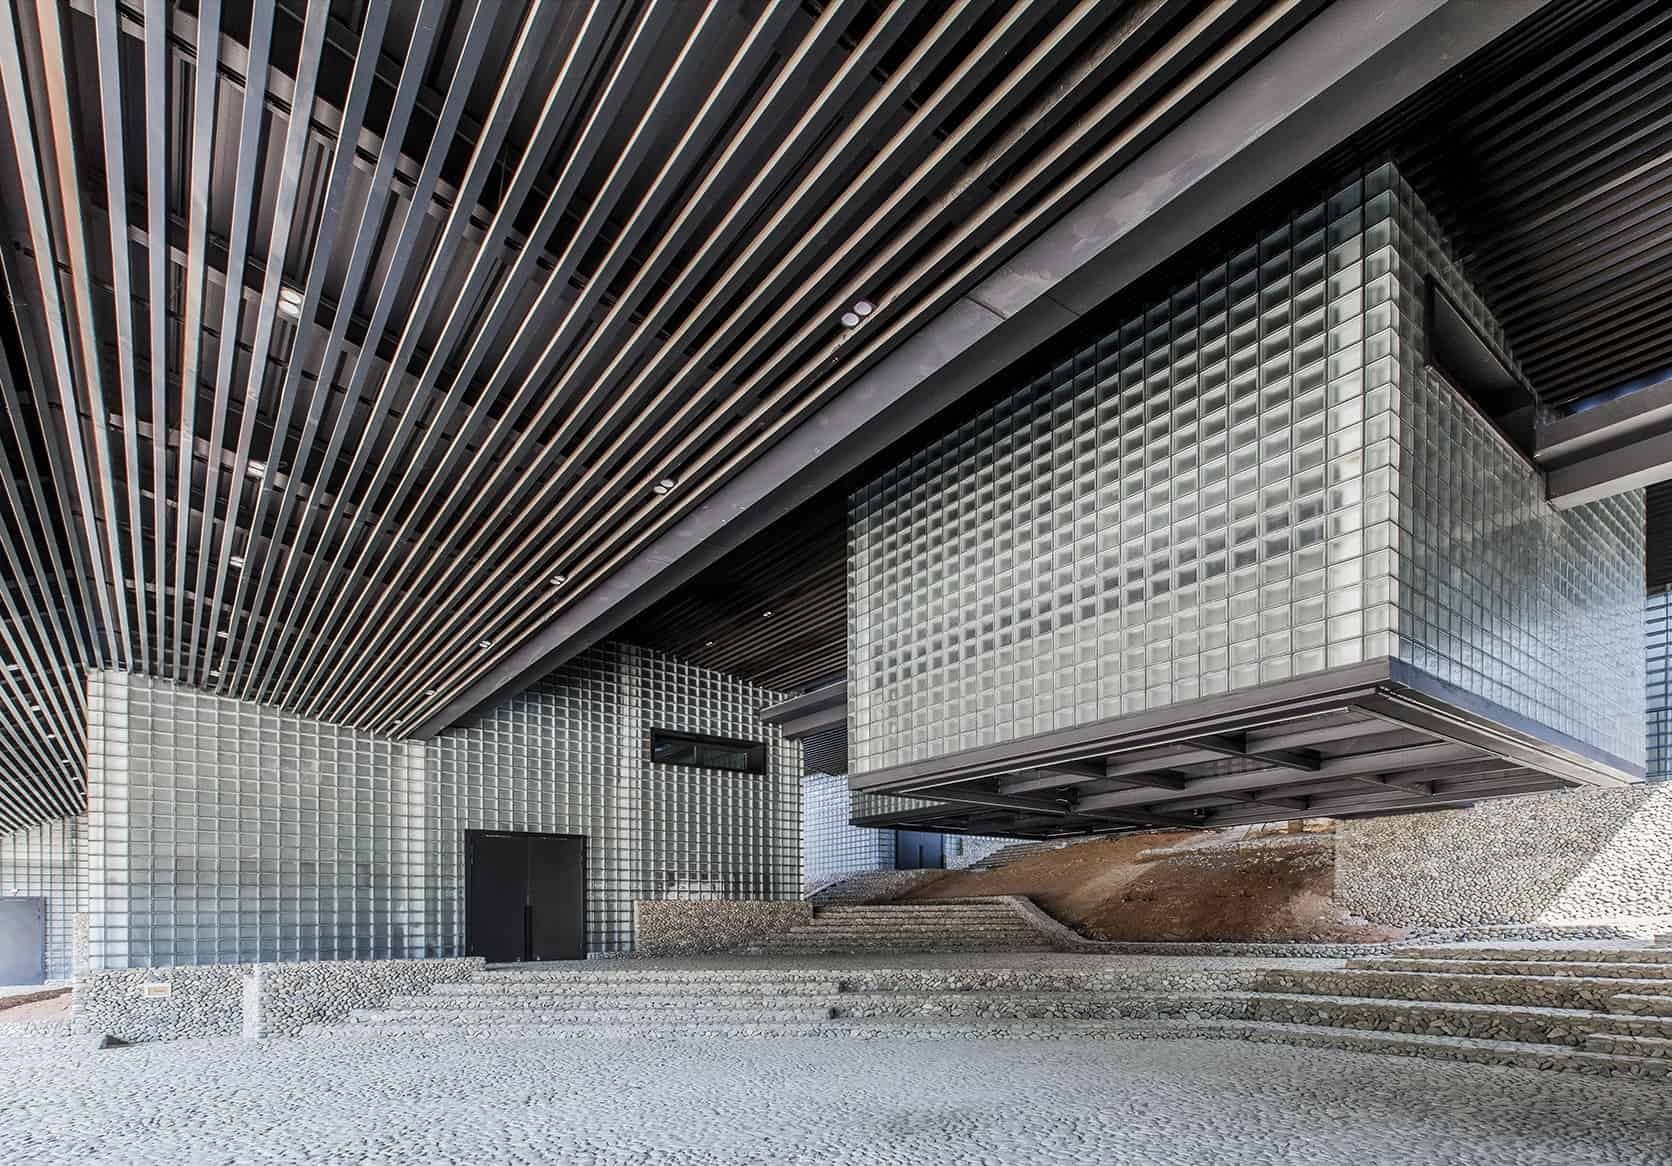 a-awards-2019-26-du-an-doat-giai-den-tu-trung-quoc-cuoc-cach-mang-architecture-china (10)